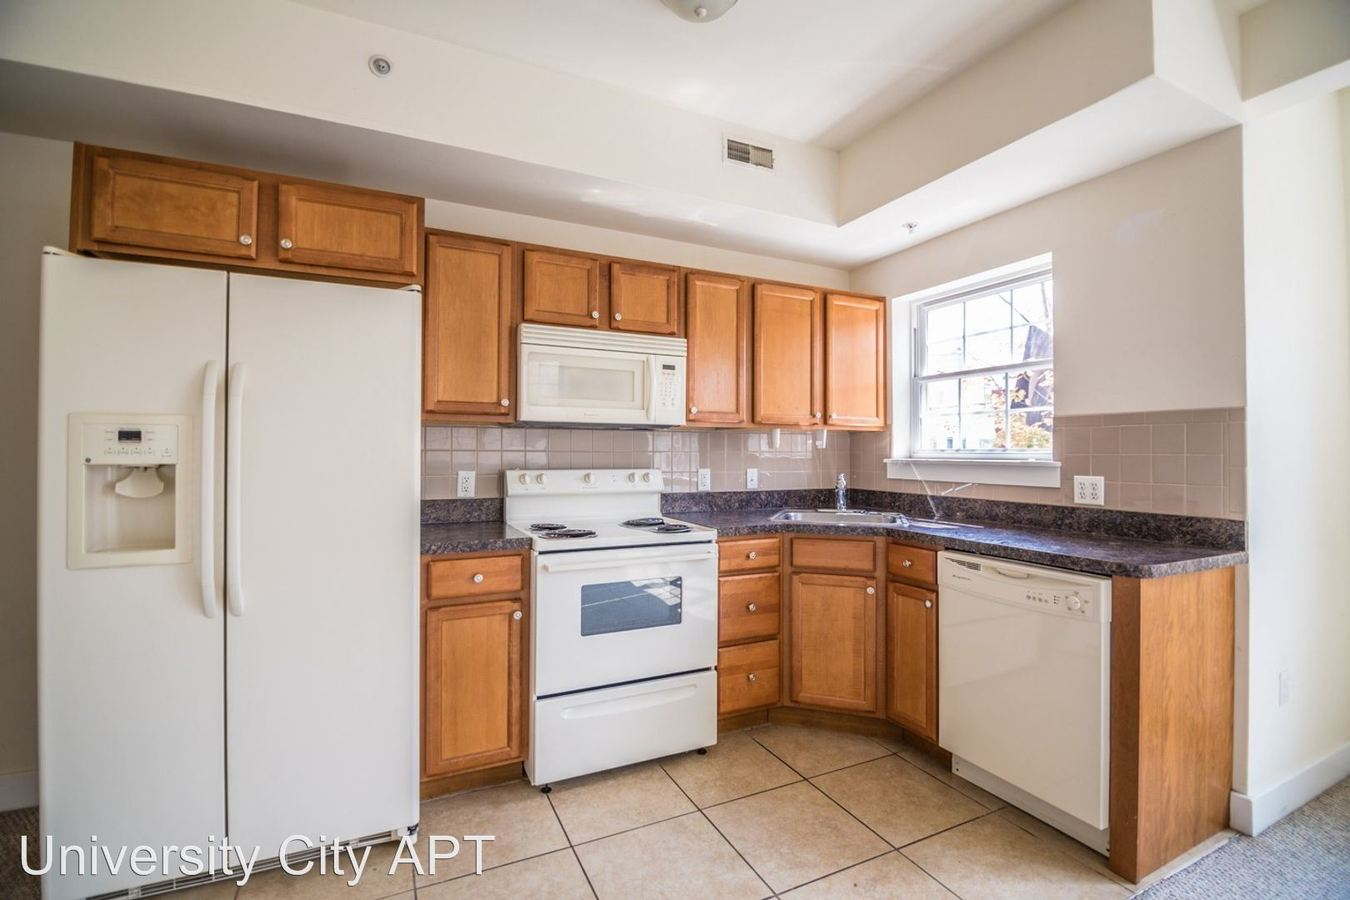 3 Bedrooms 2 Bathrooms Apartment for rent at 3411 Brandywine St in Philadelphia, PA